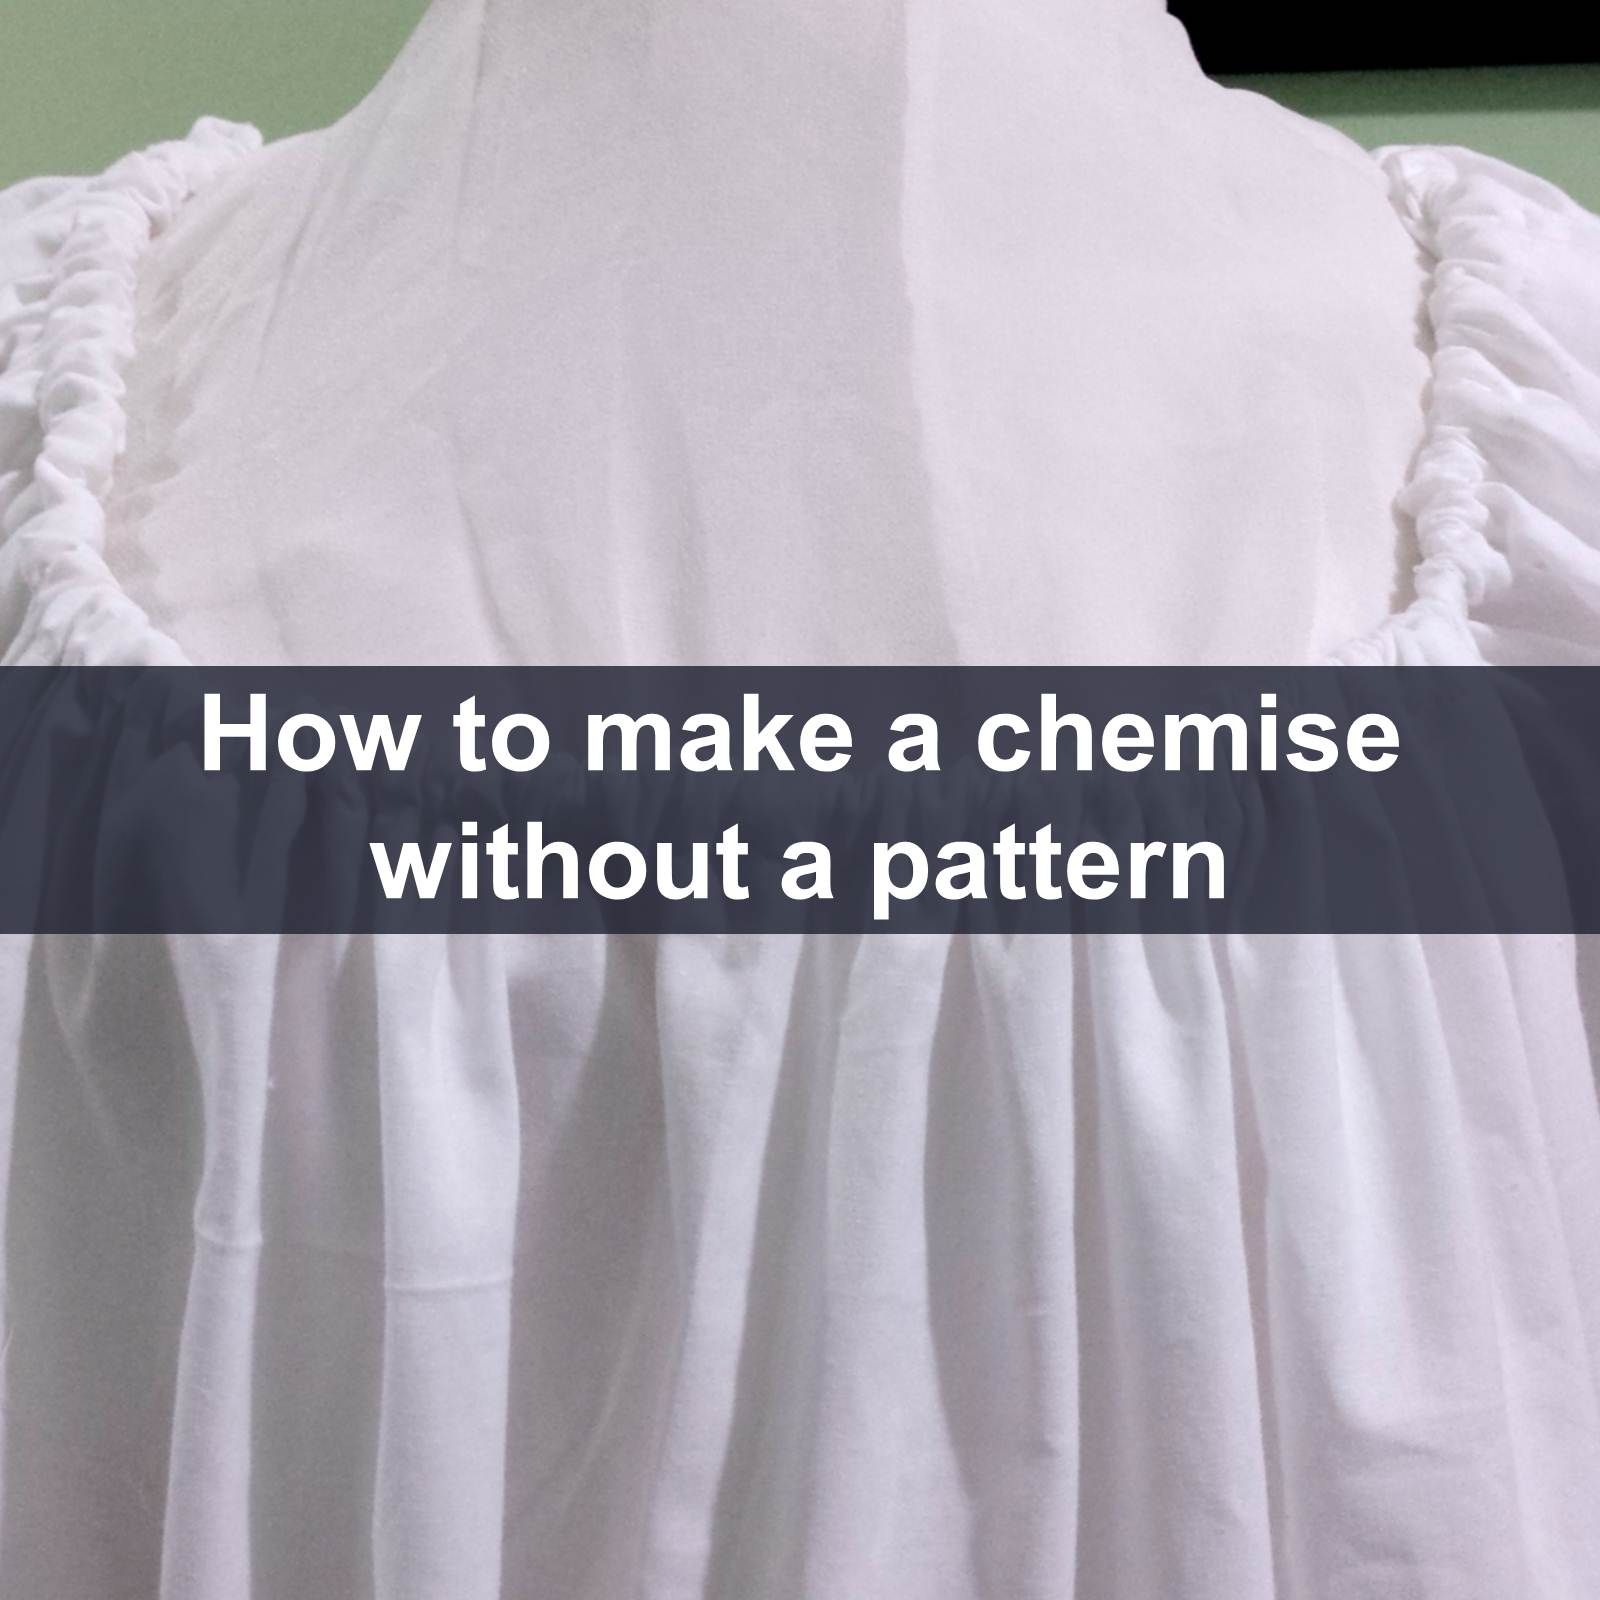 How to make a chemise without a pattern | Mittelalter gewandung ...